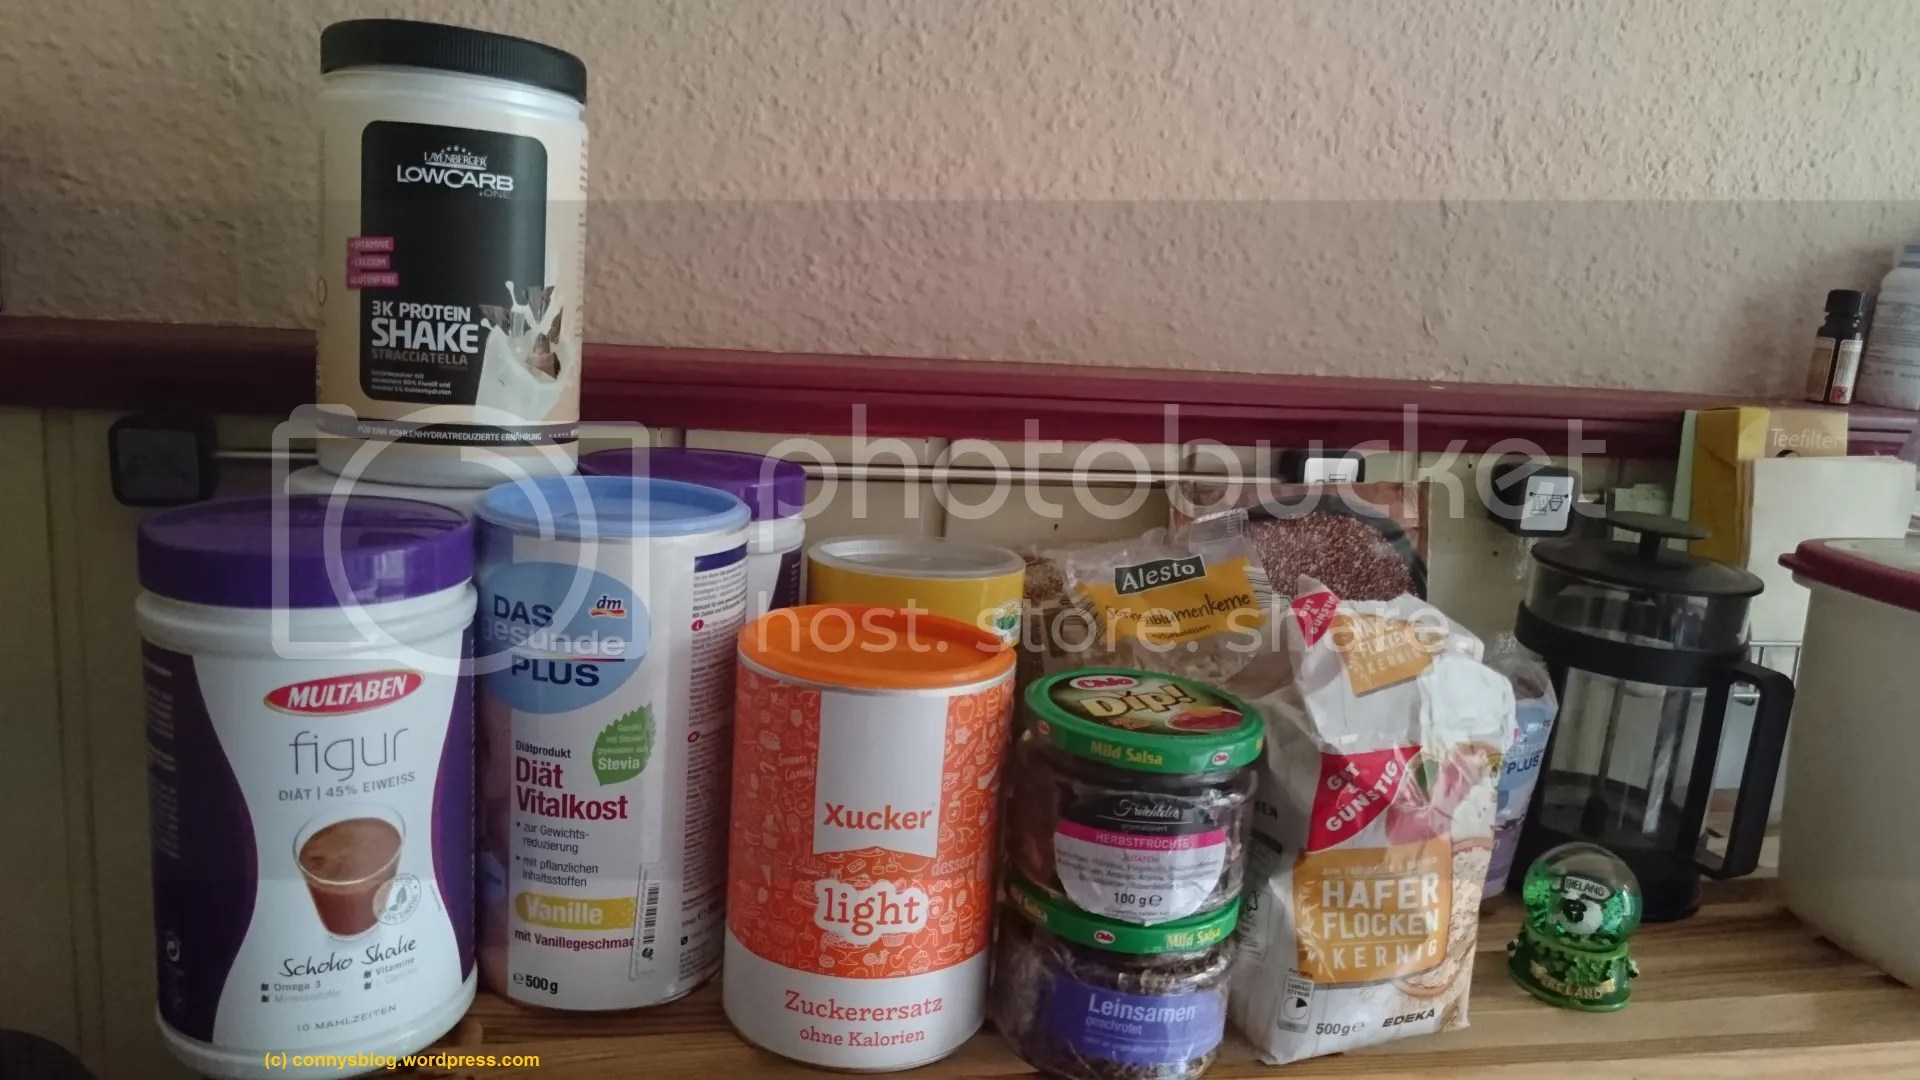 Dosenfutter - connys low carb photo Dosenfutter_zps8lfzsnfd.jpg